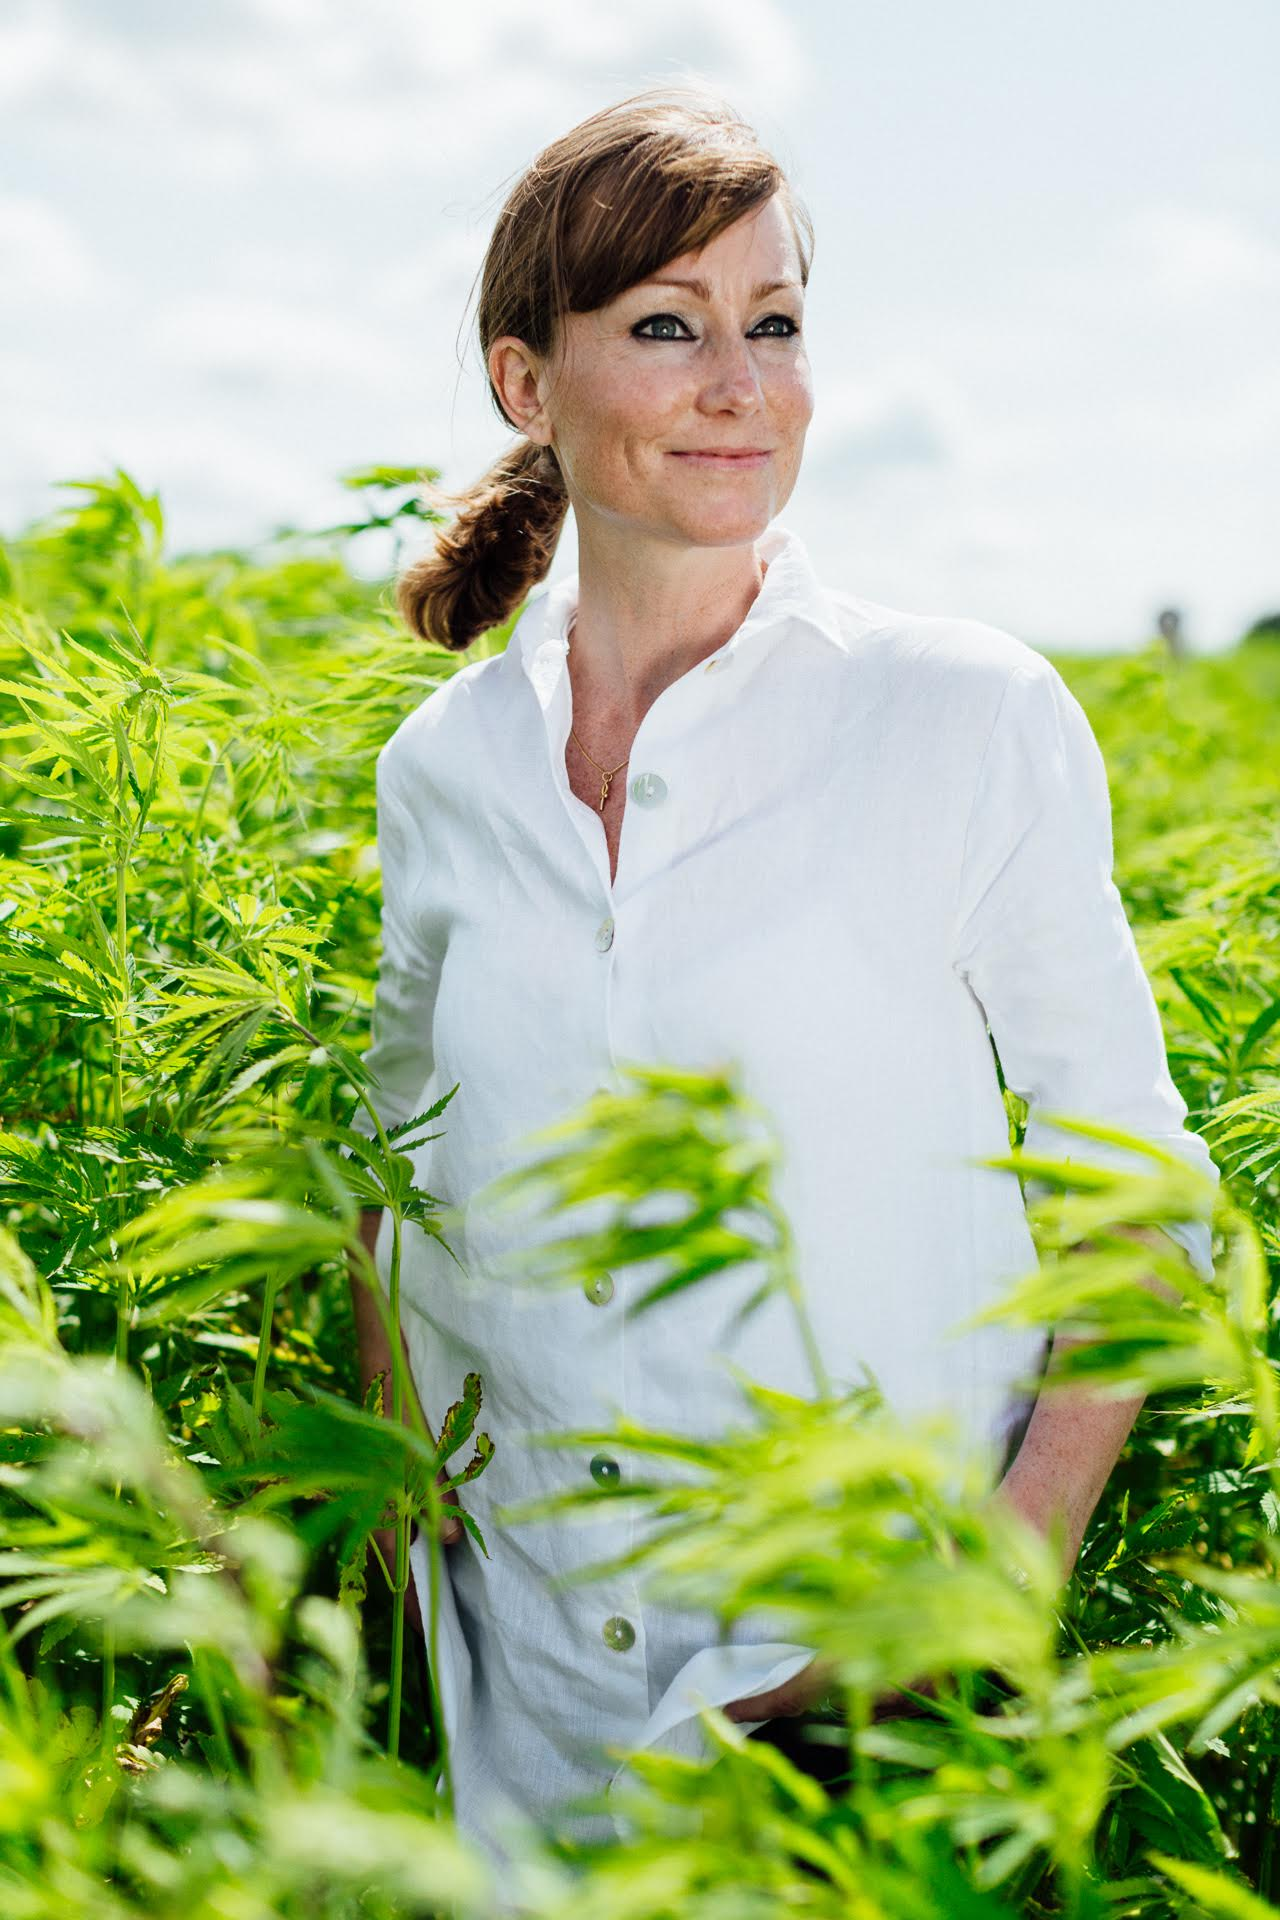 Hemp is the new sustainable fiber